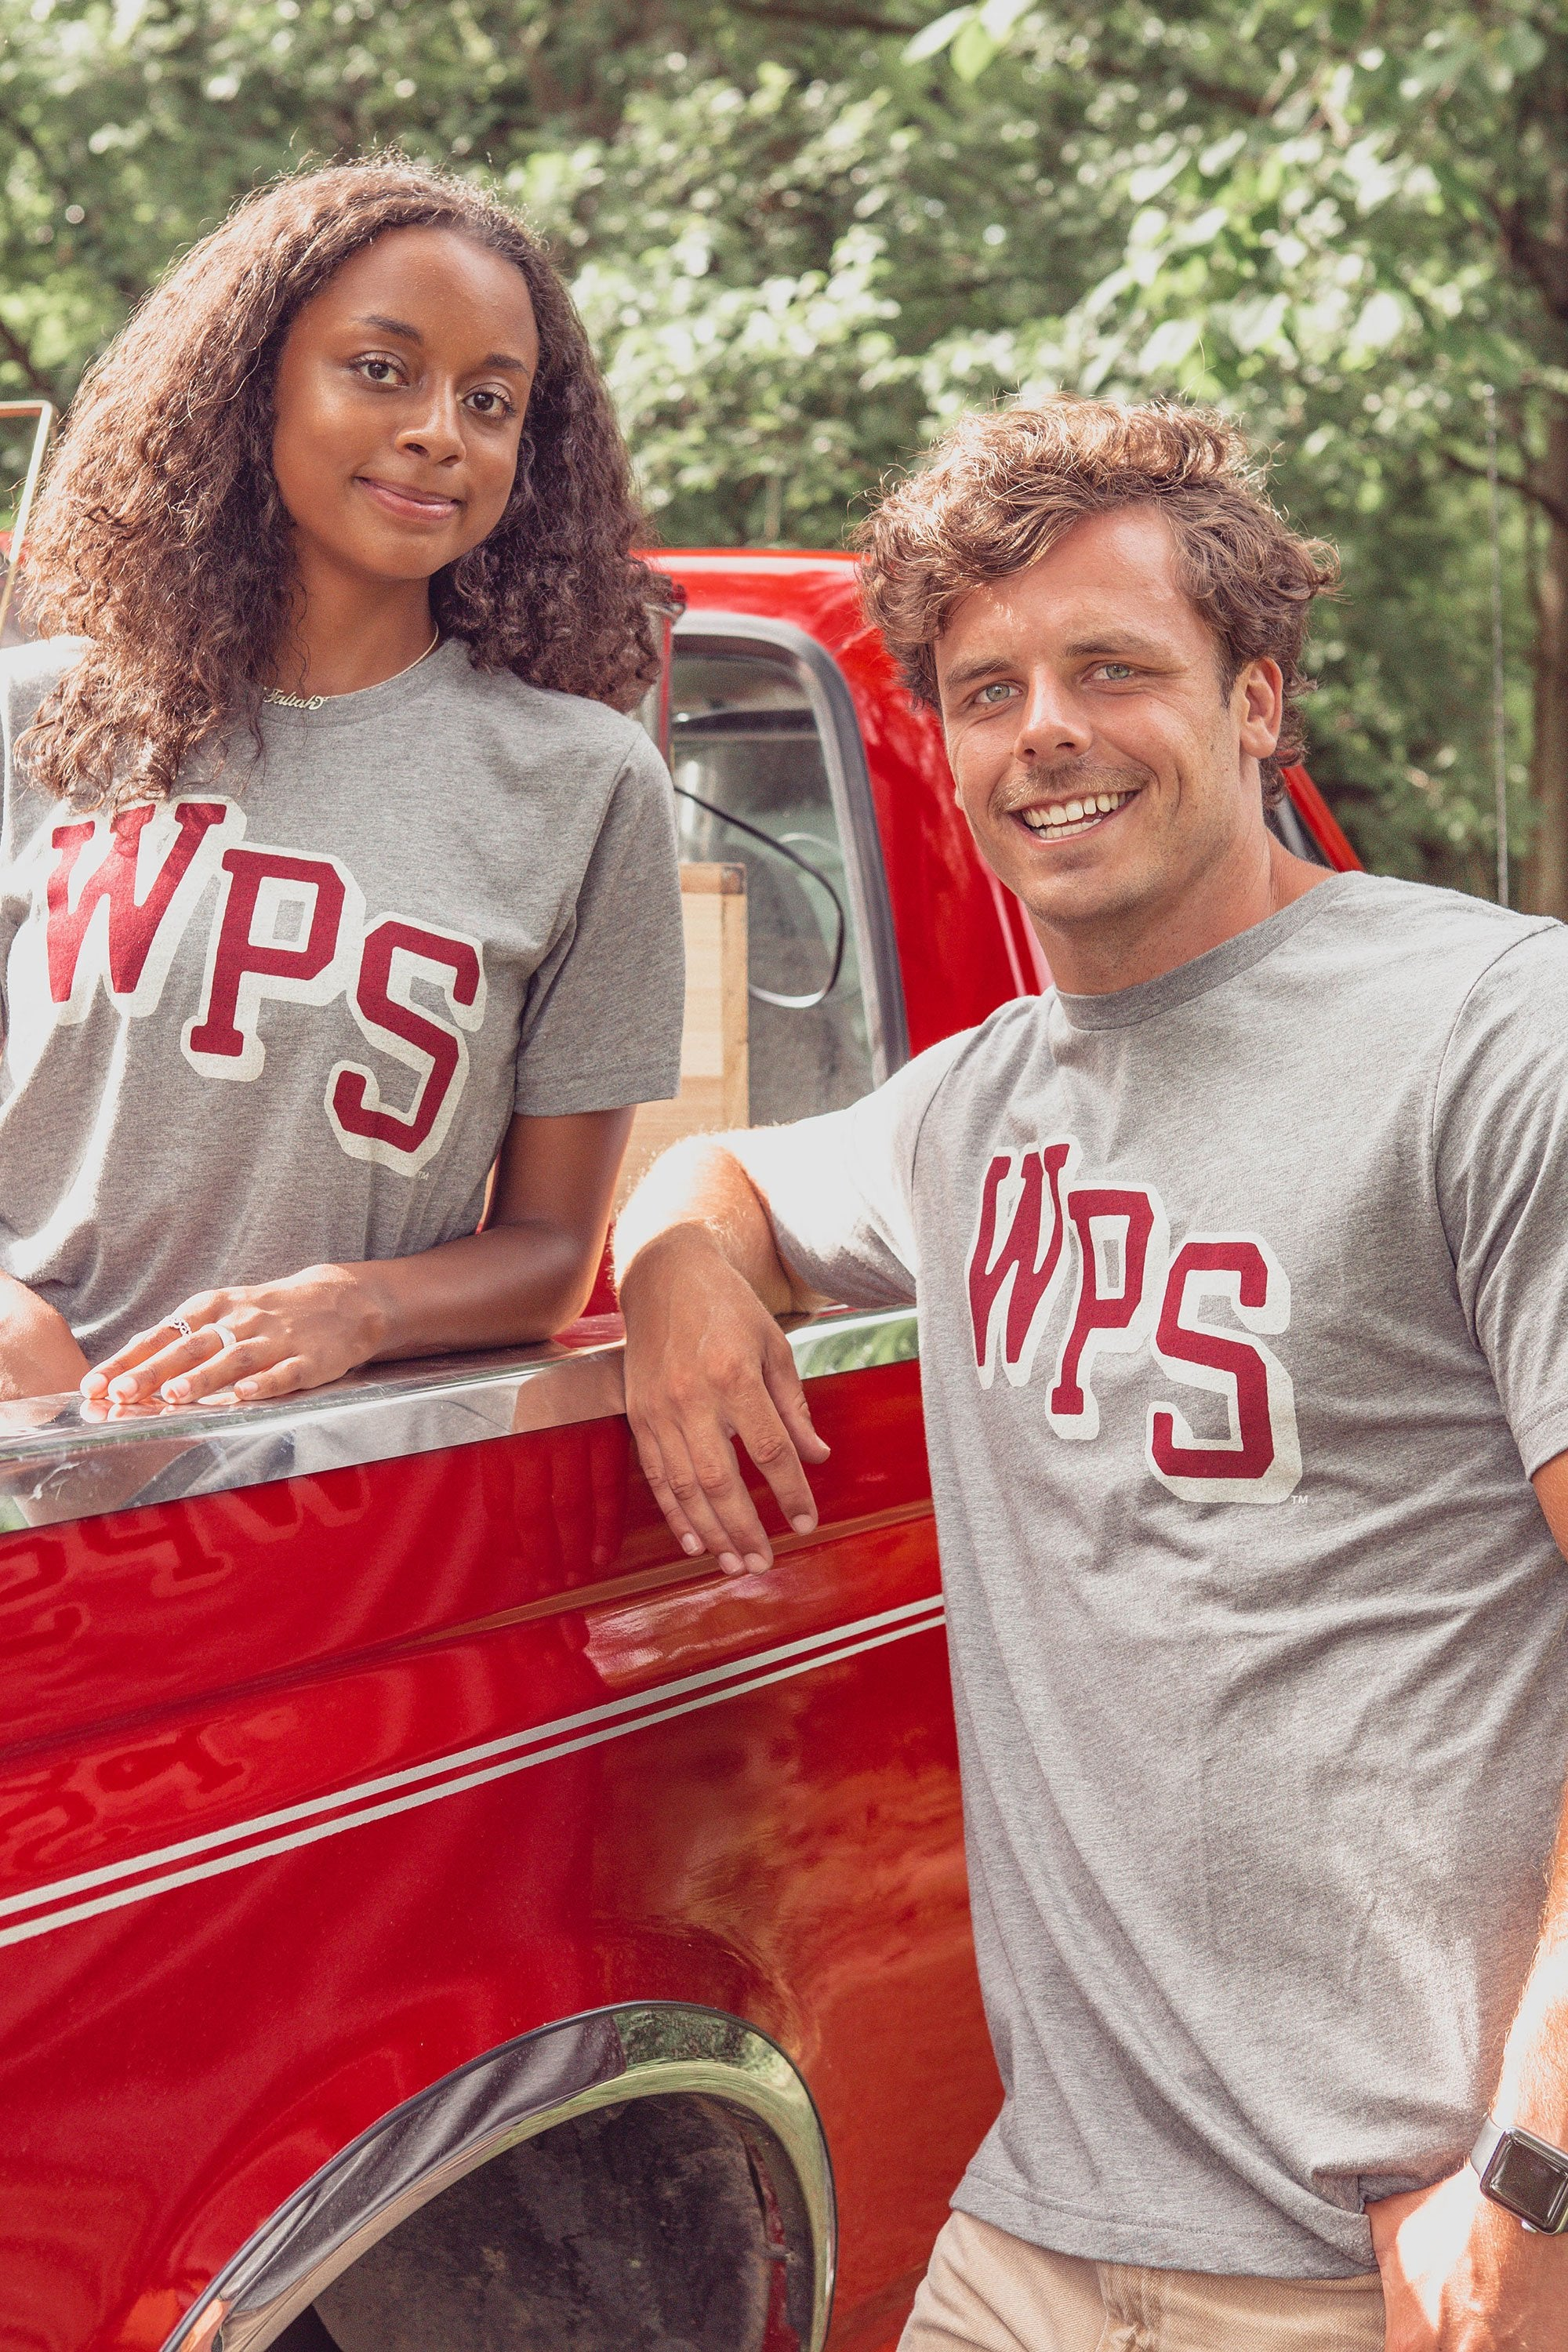 Stacked WPS T-Shirt